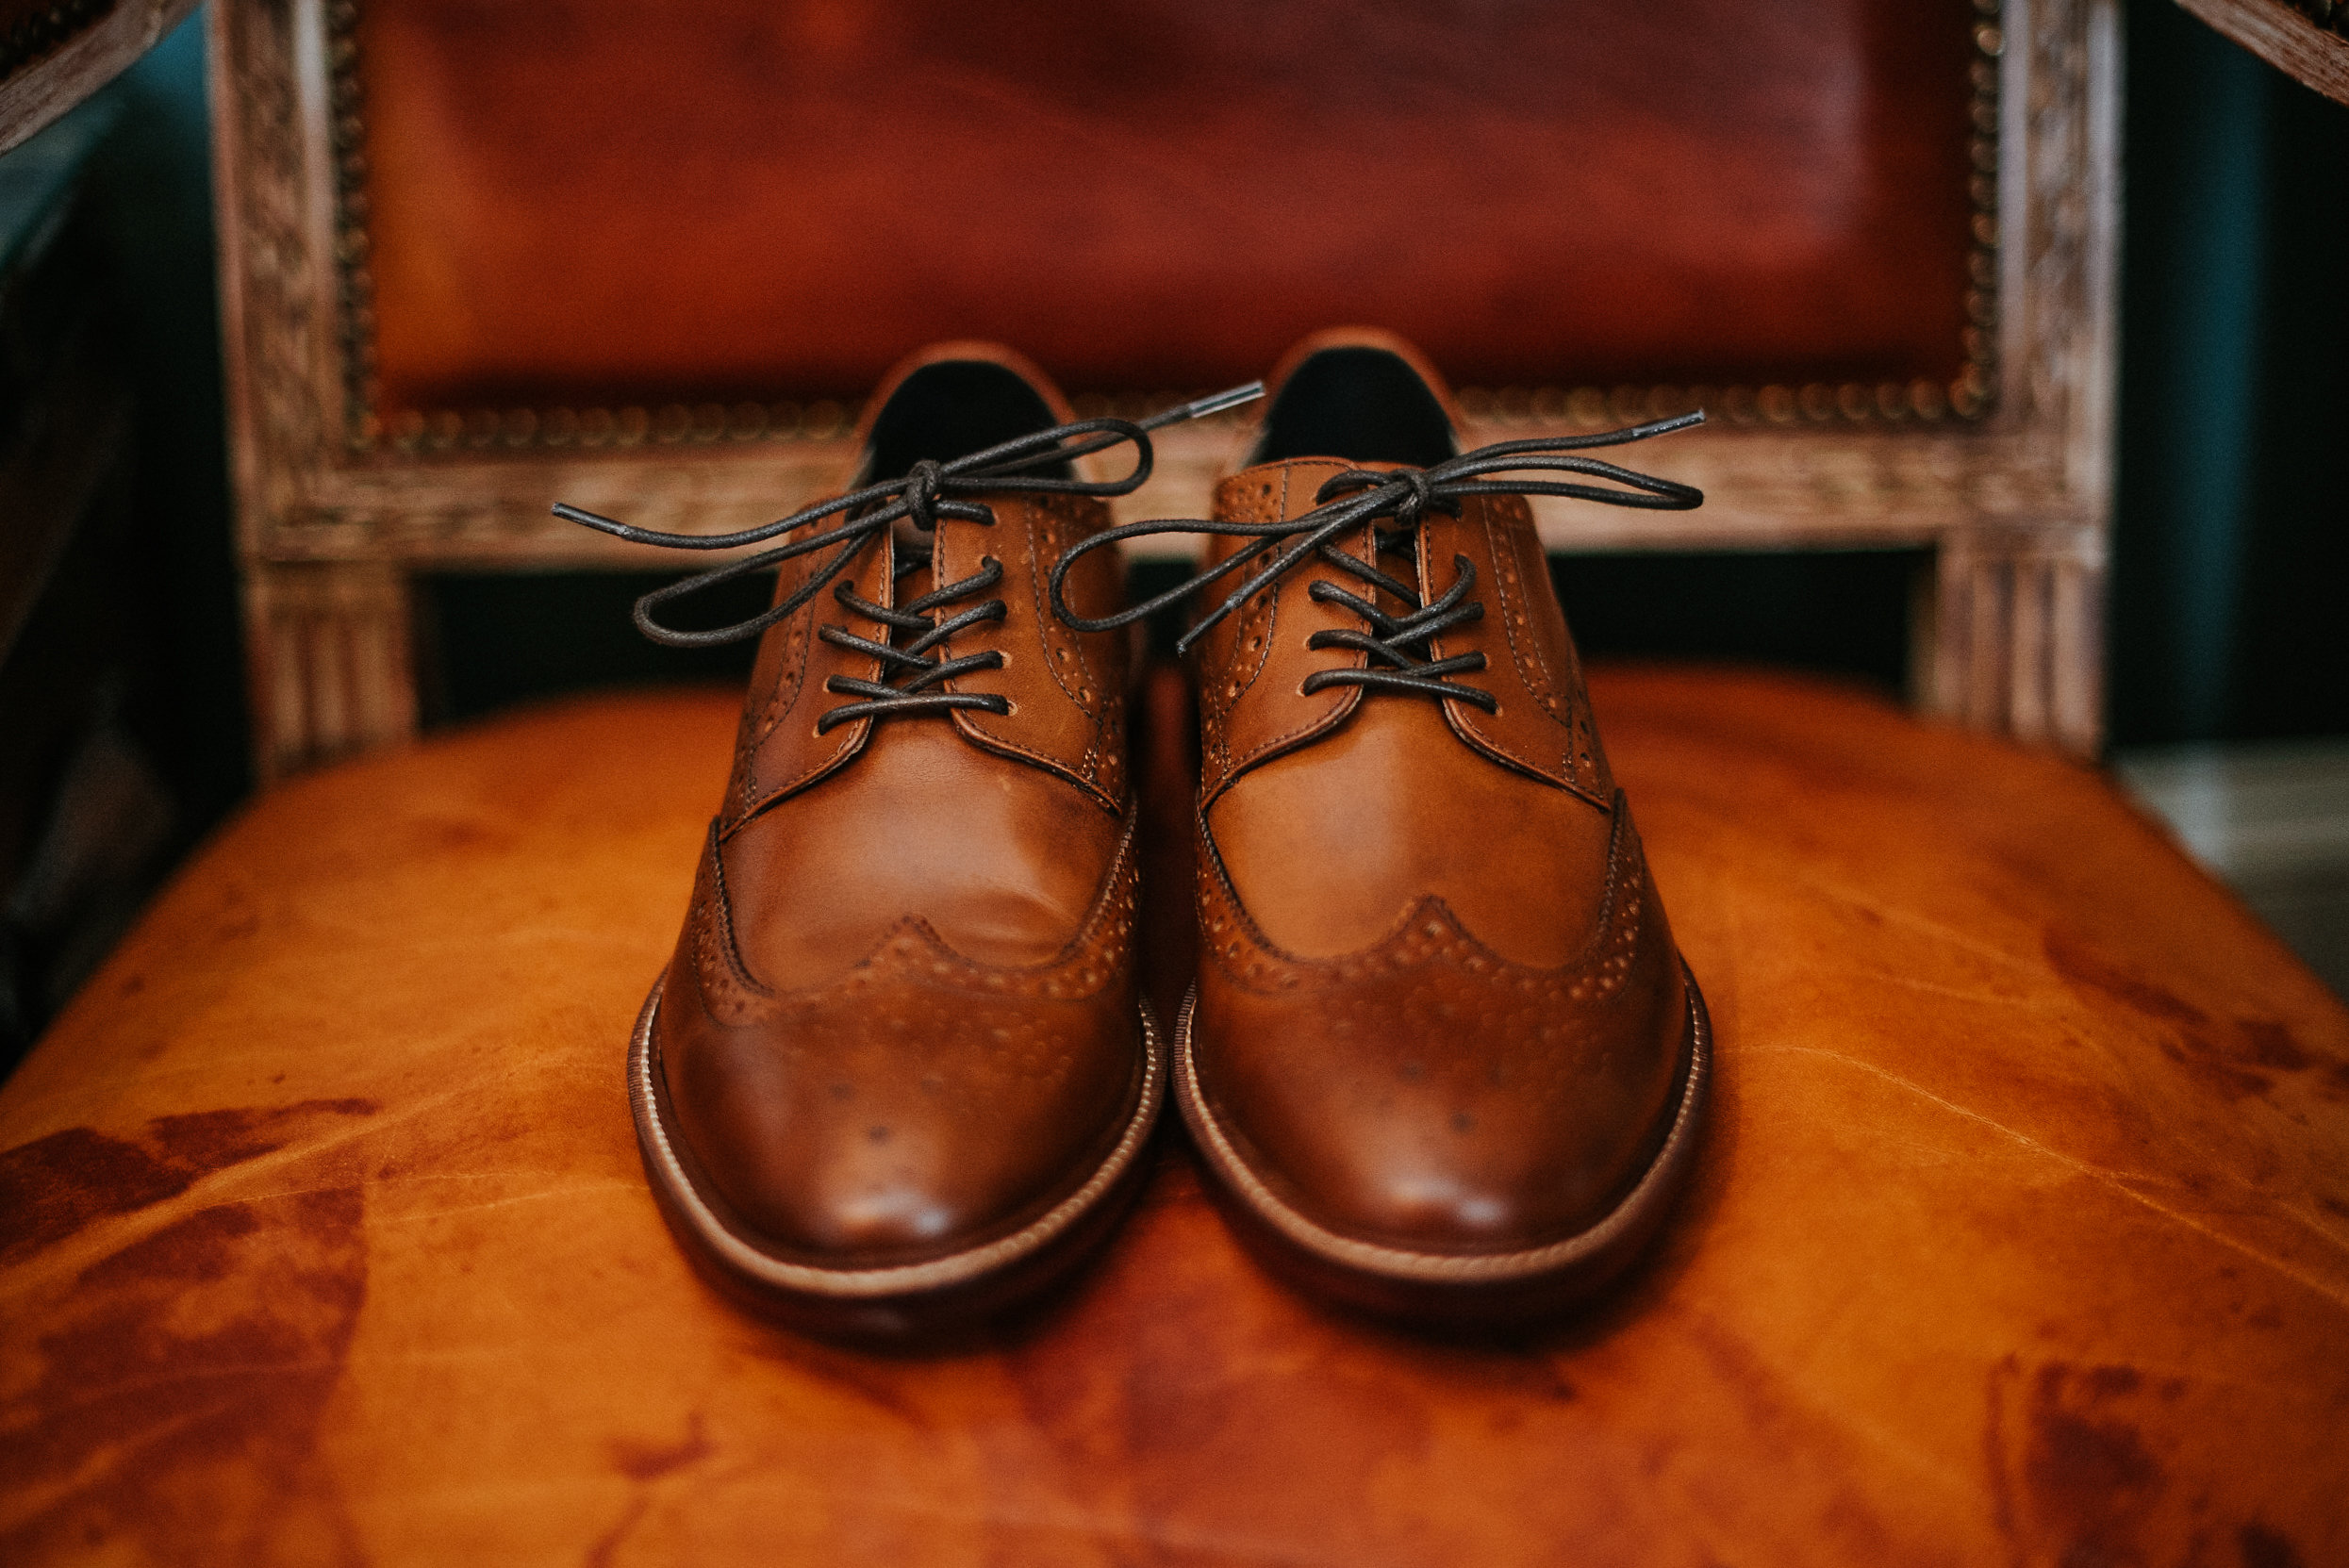 Groom's shoes sitting on leather chair